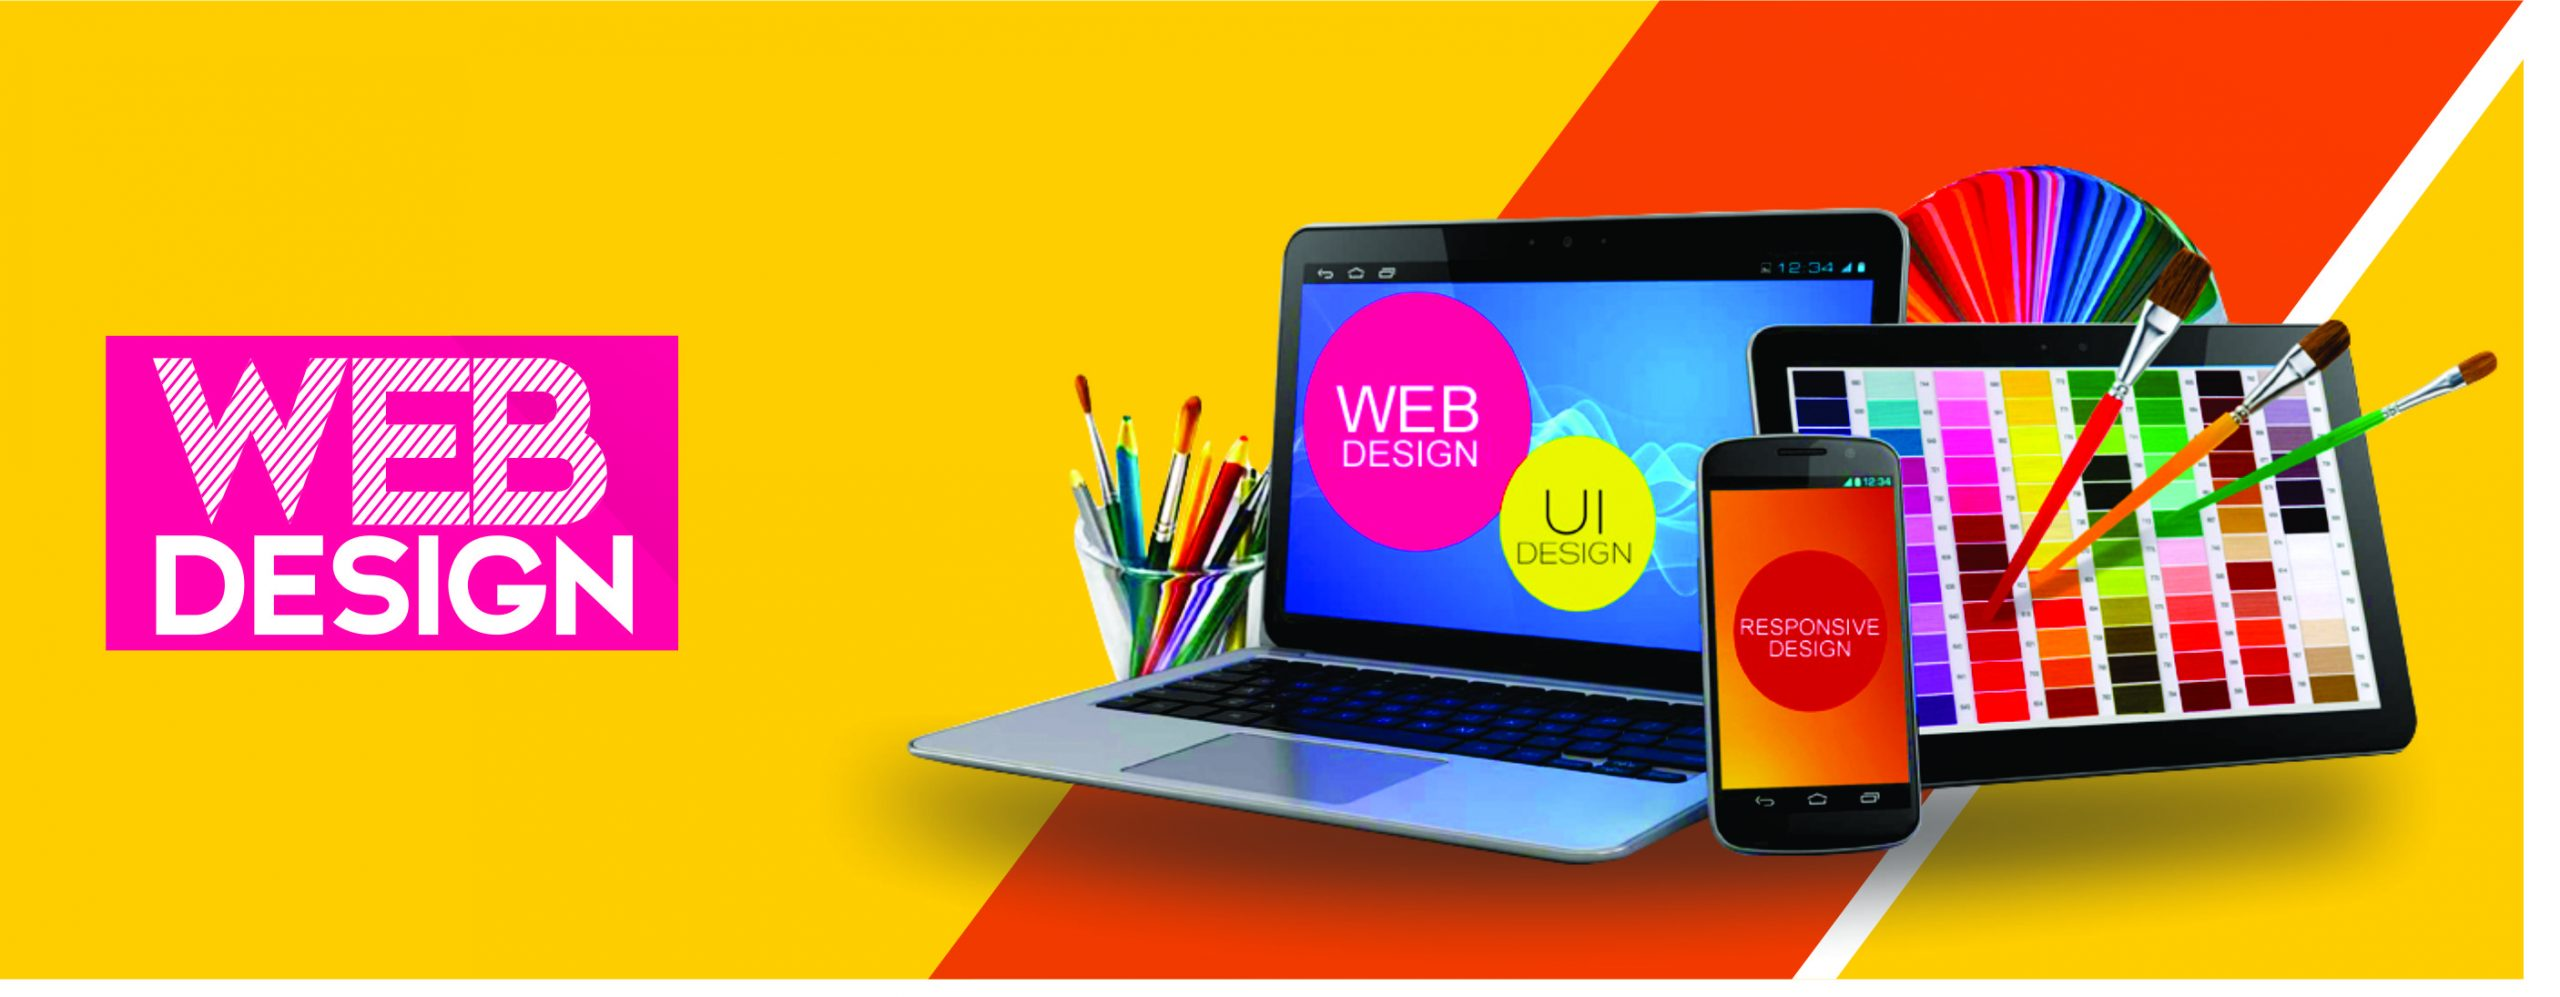 web design in port harcourt